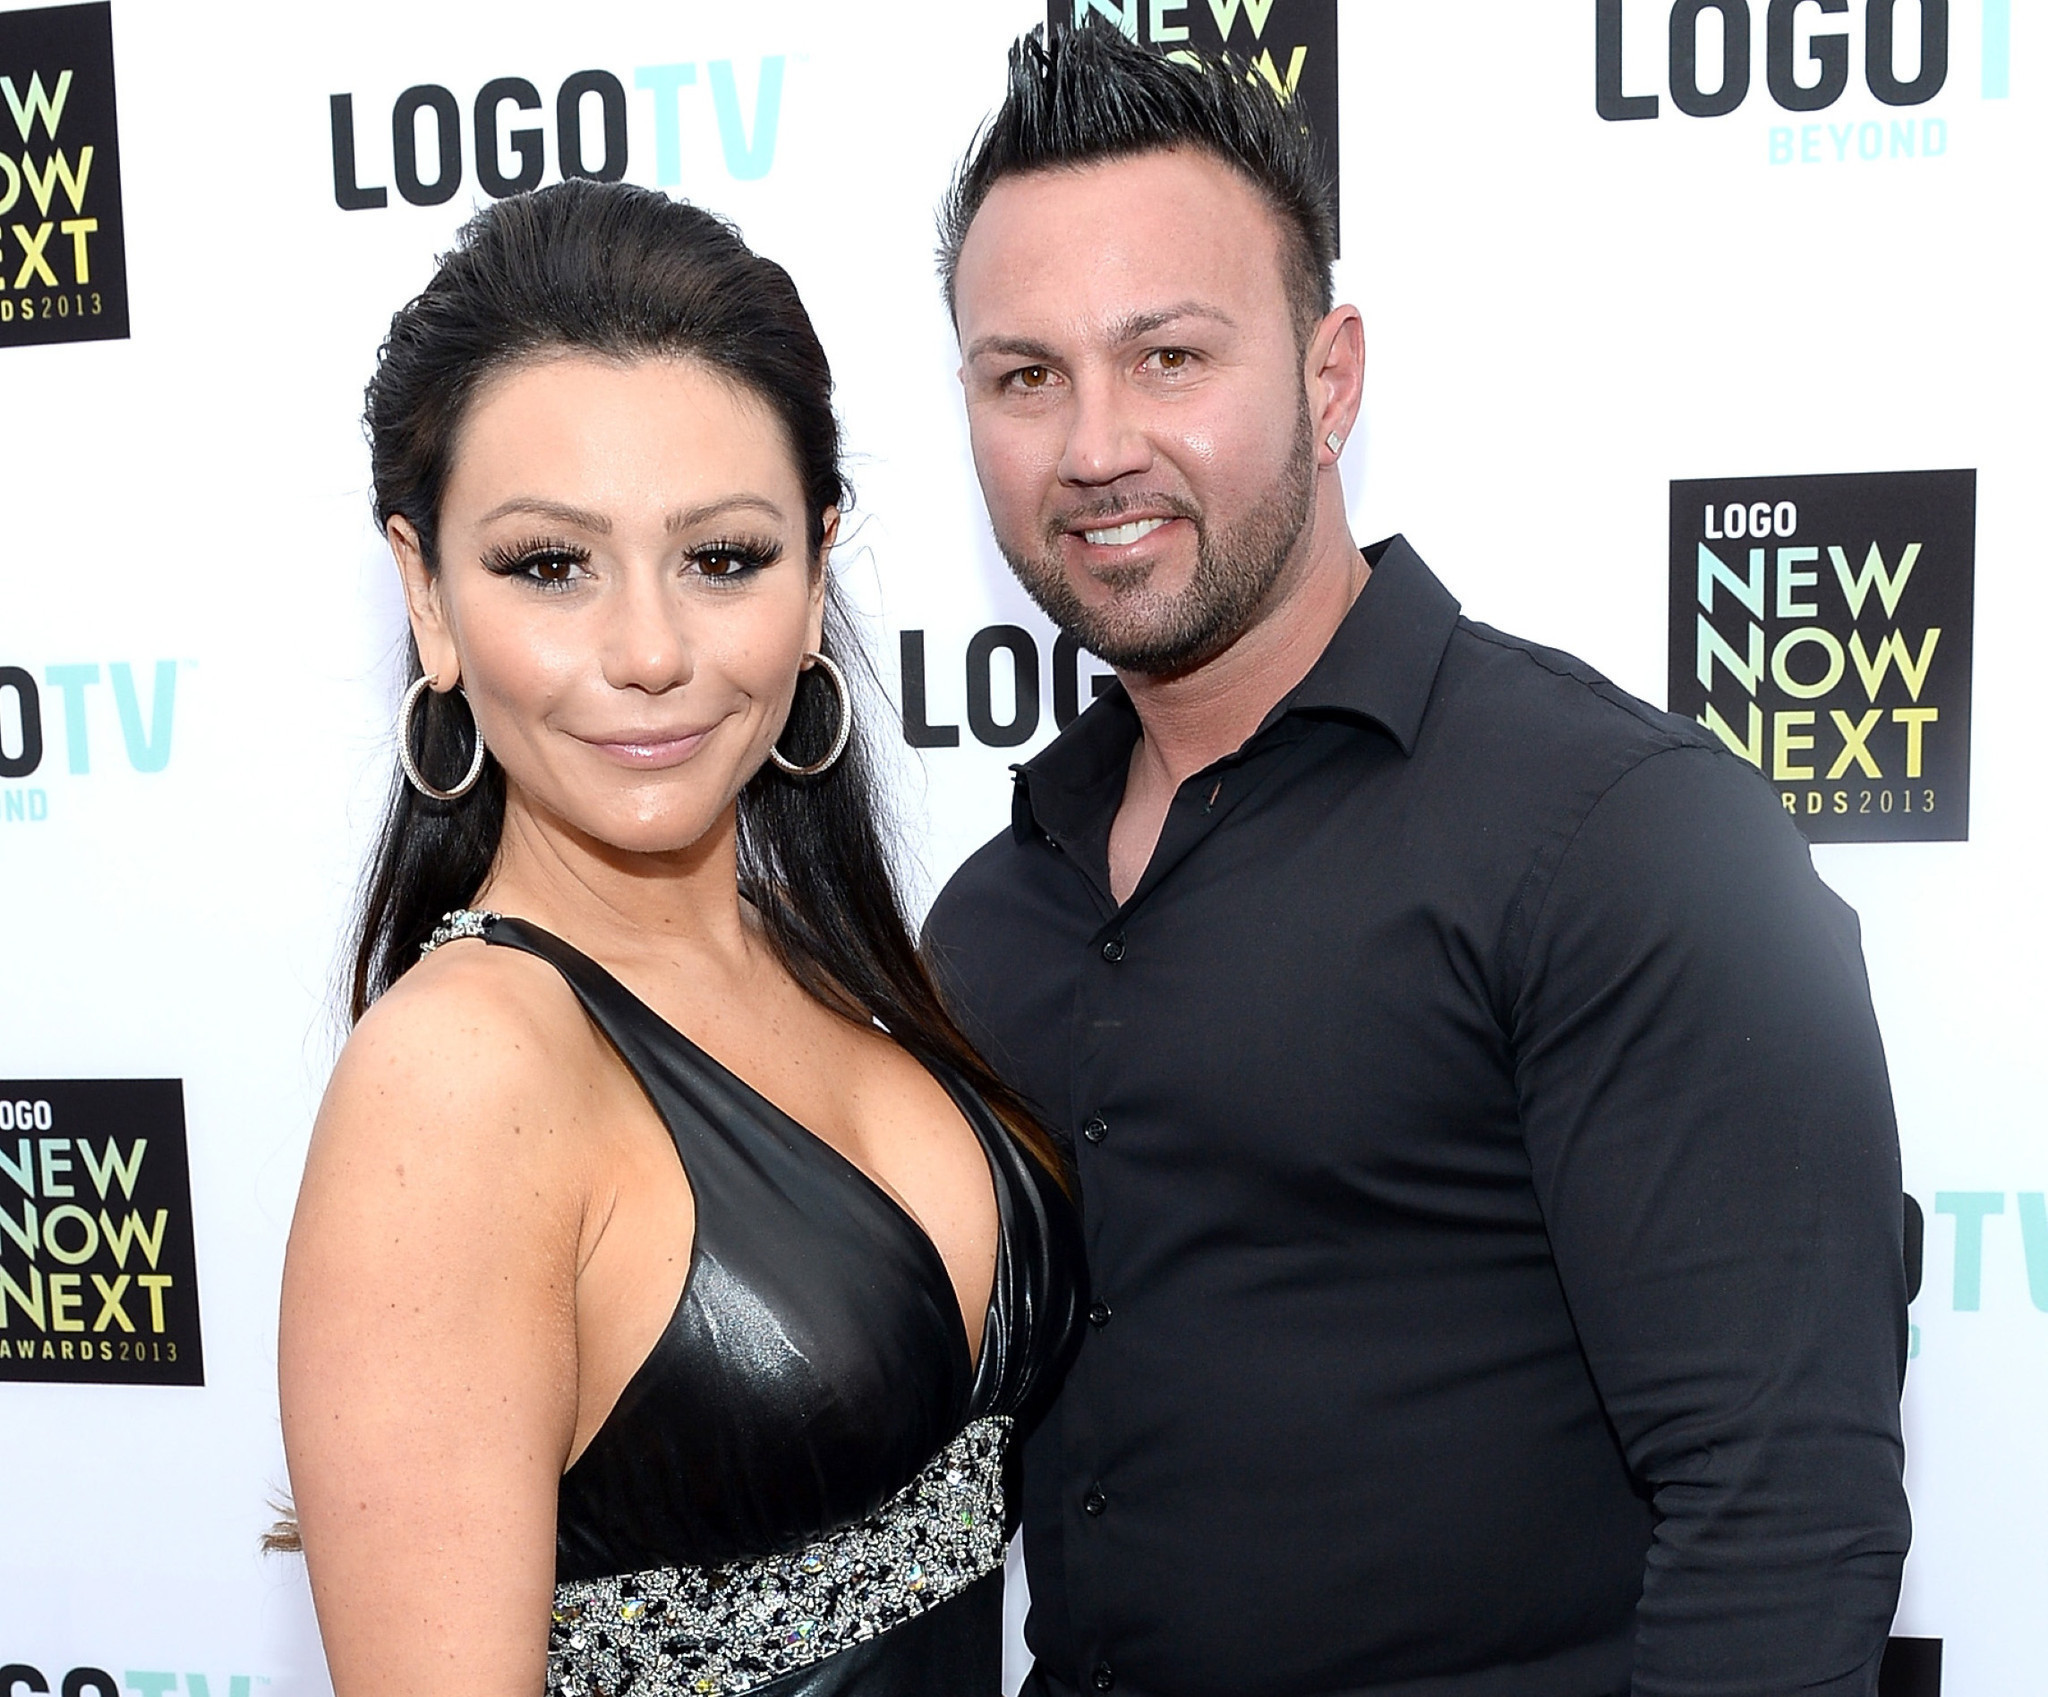 mike snooki dating Ronnie magro from 'jersey shore' and 'famously single' dishes on his dating life — find out what he's saying about his girlfriend.